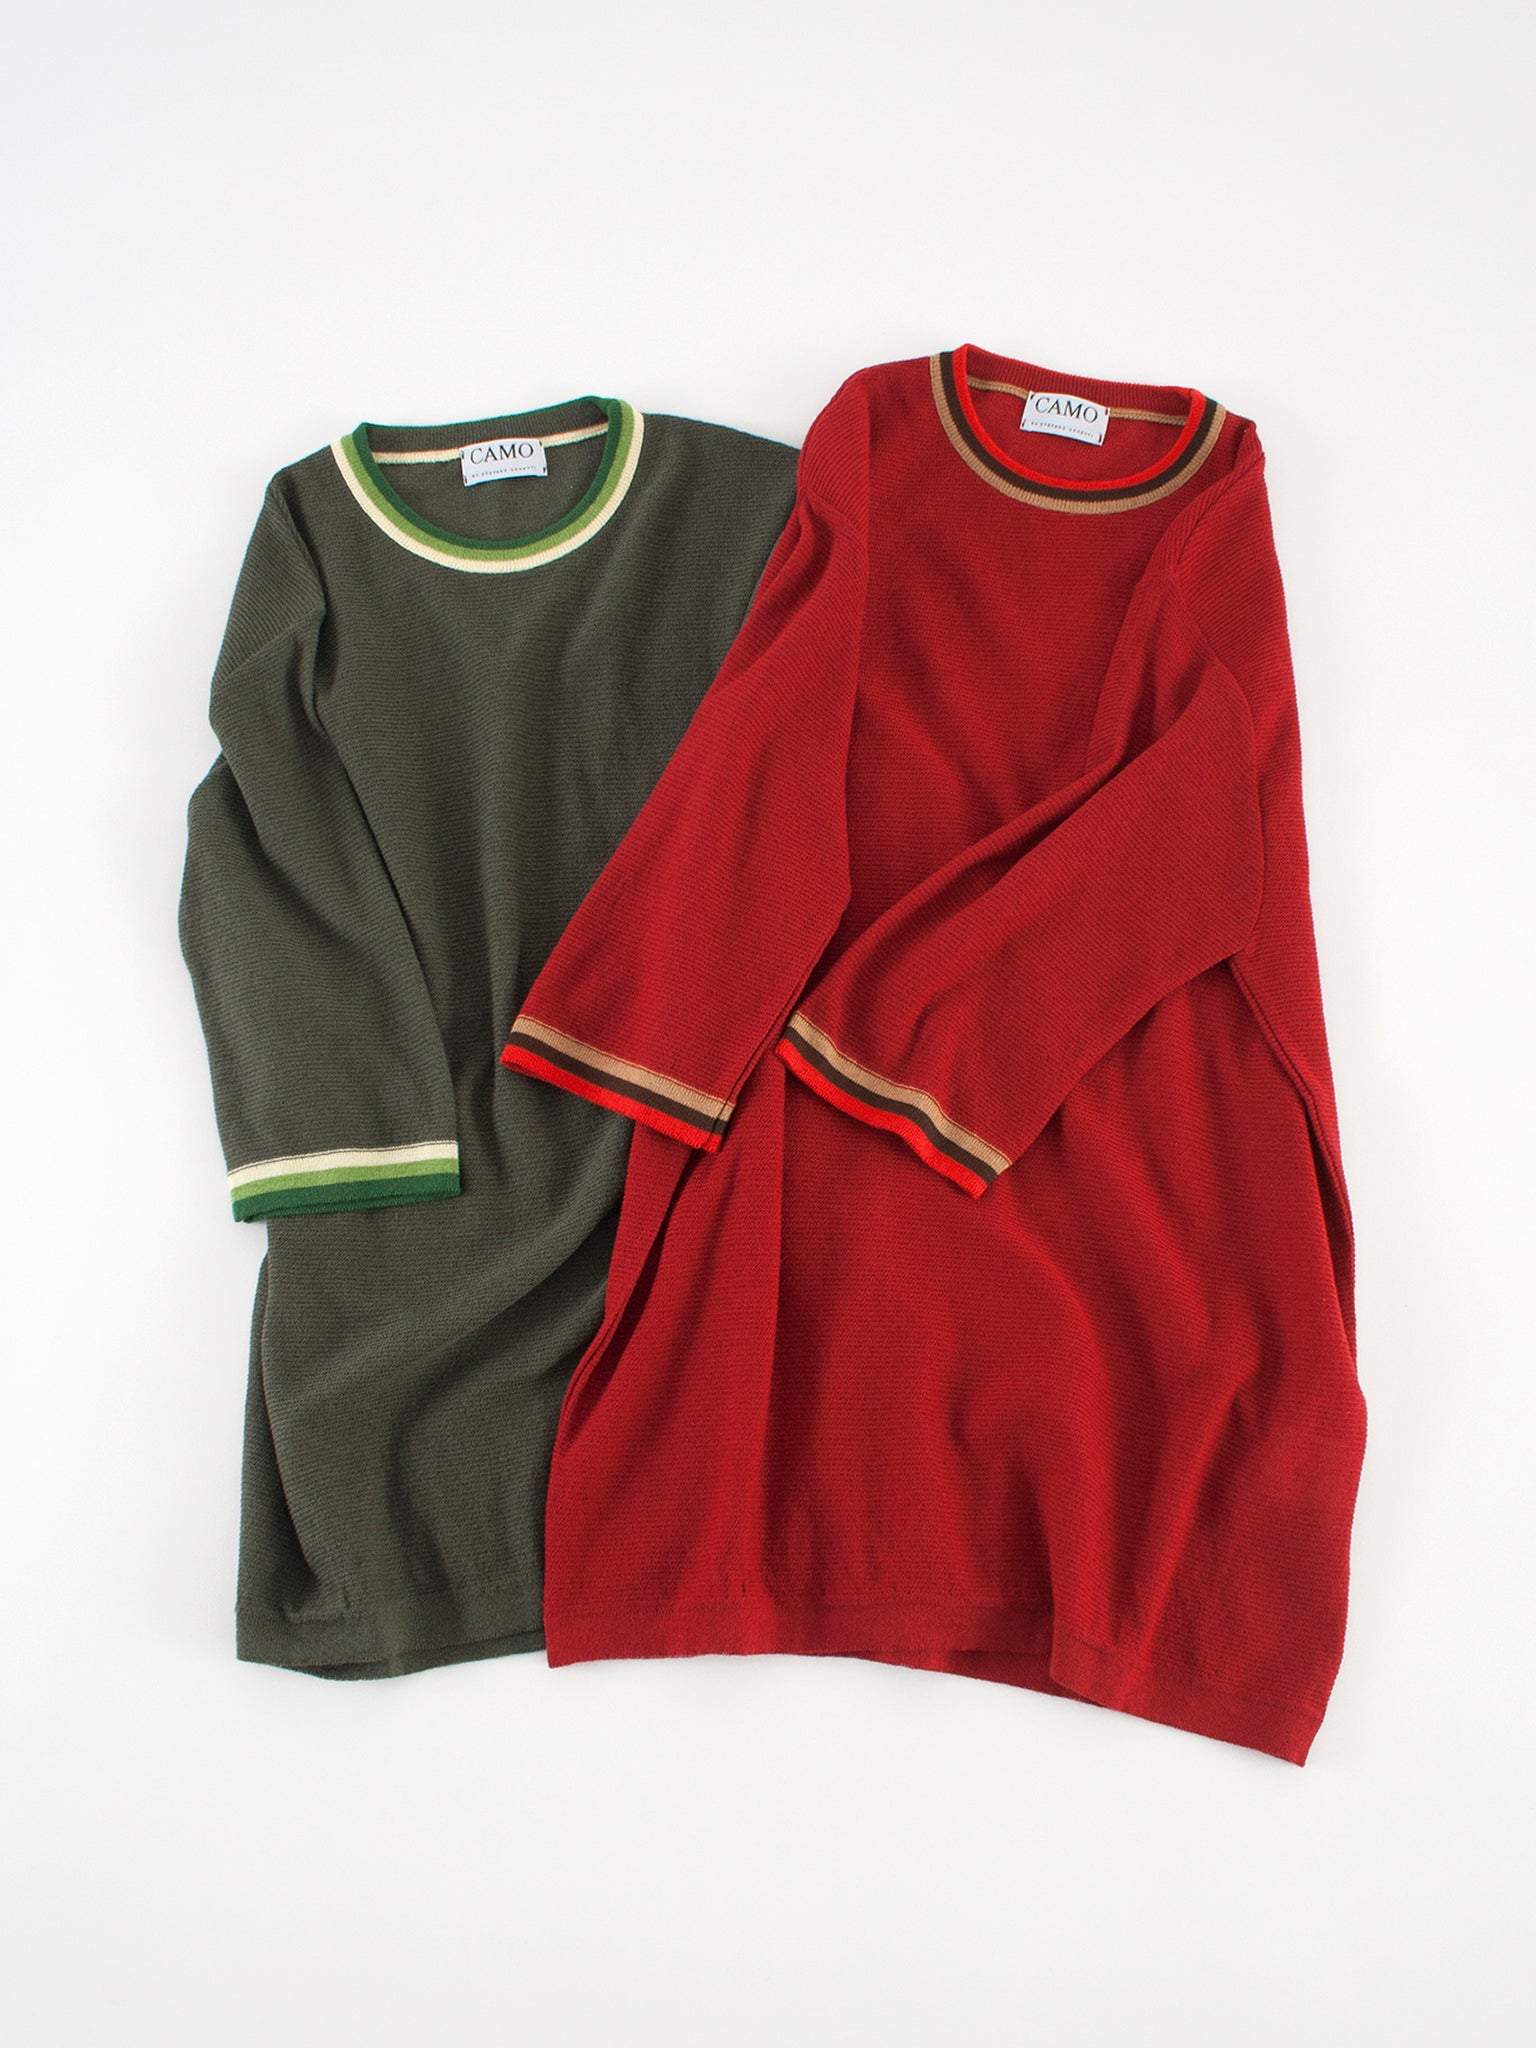 Feystongal Knit T-shirt Green and Red